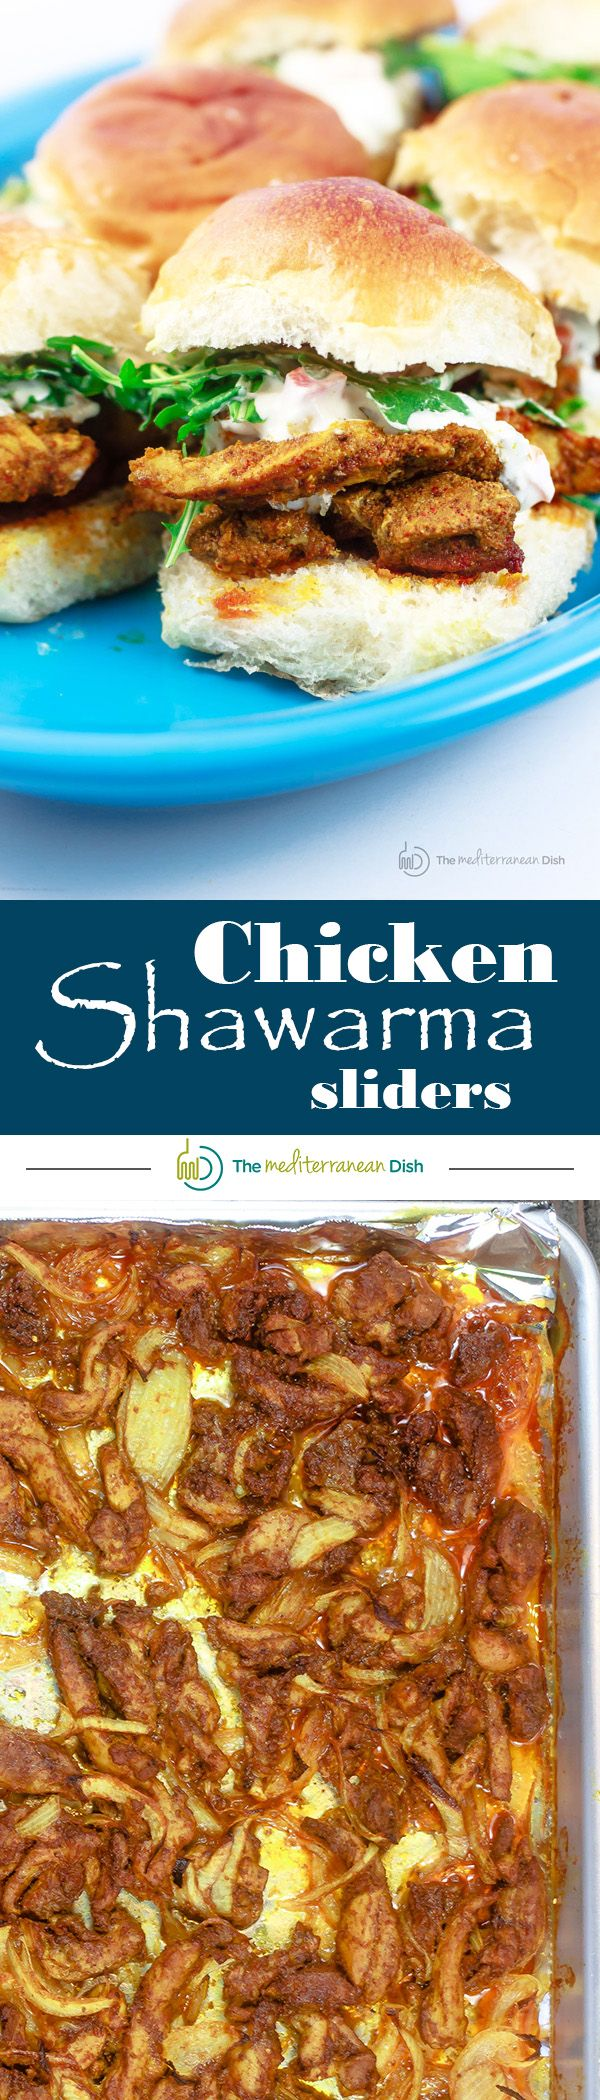 Chicken Shawarma Recipe | The Mediterranean Dish. Step-by-step for how to make chicken shawarma at home (mixing your own shawarma spices)! This oven-roasted chicken shawarma version is closest to the real deal you find on the streets of the Middle East! Takes 40 mins all together! And to food a crowd, I do chicken shawarma sliders with only arugula and store-bought Greek yogurt dip for toppings!